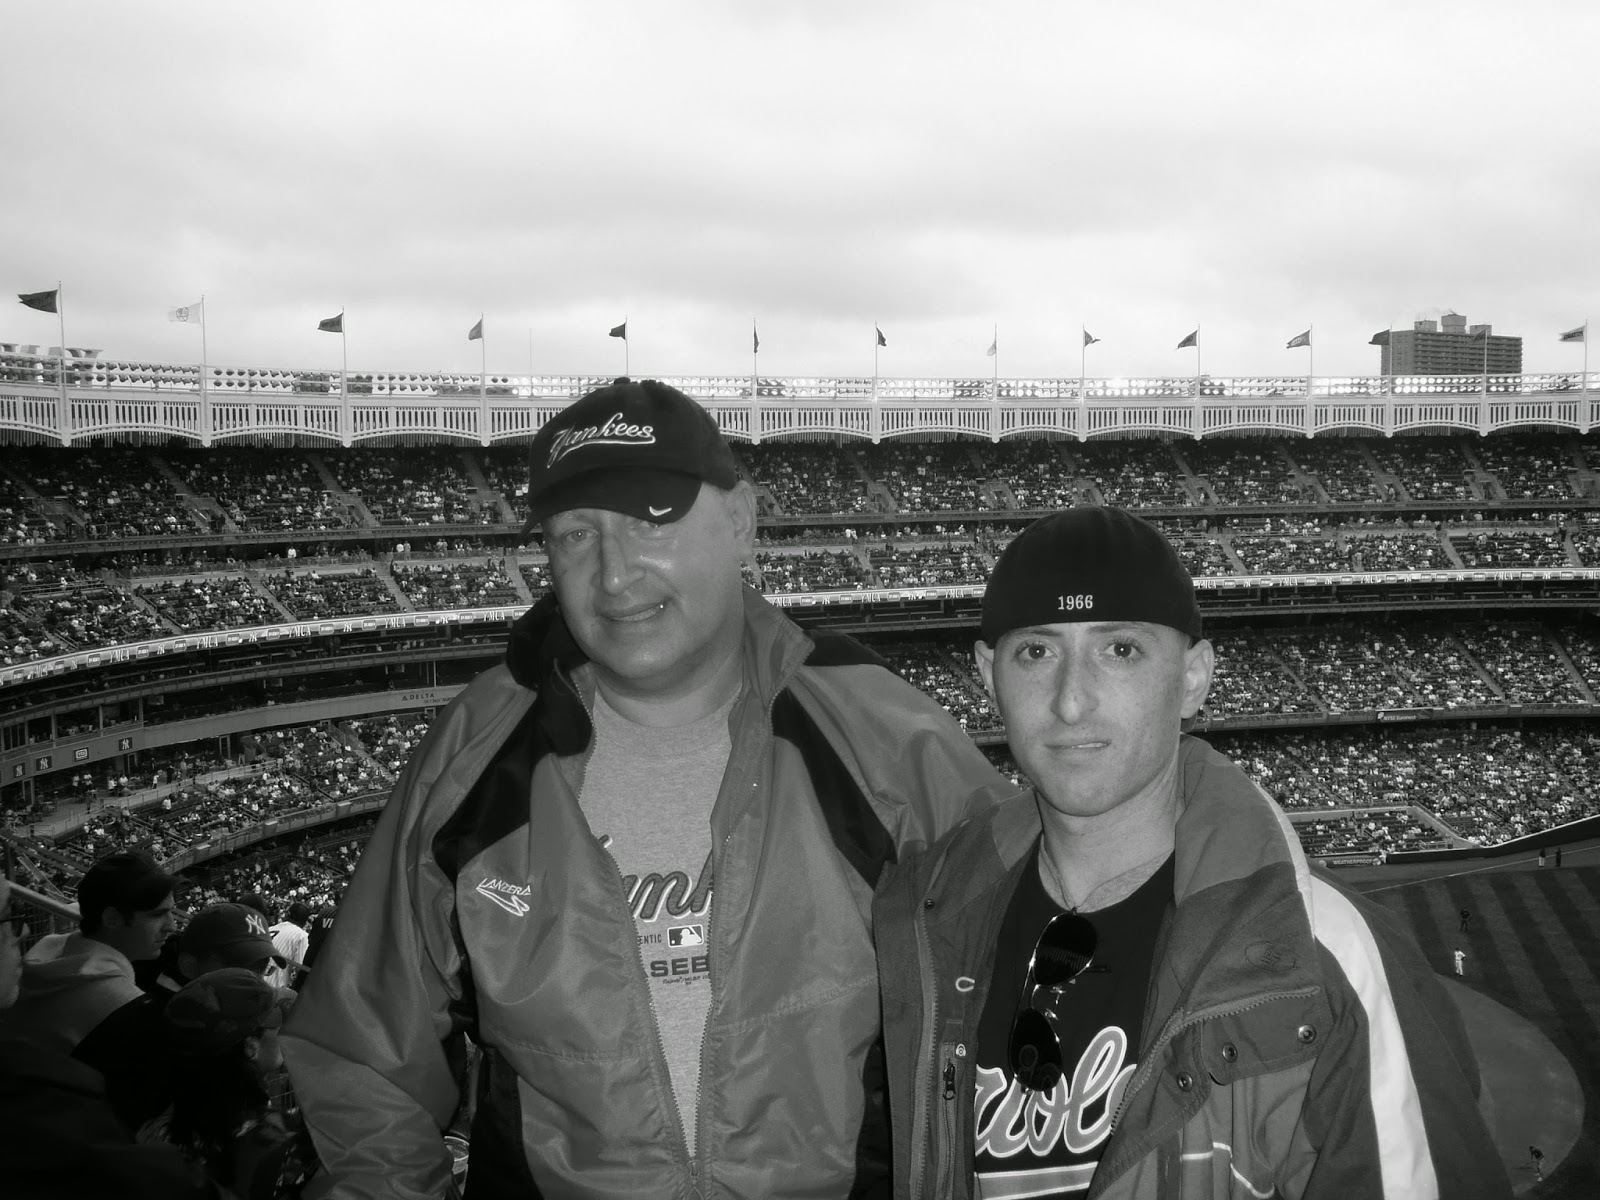 Benjamin Rubenstein visiting Yankee Stadium in September 2009